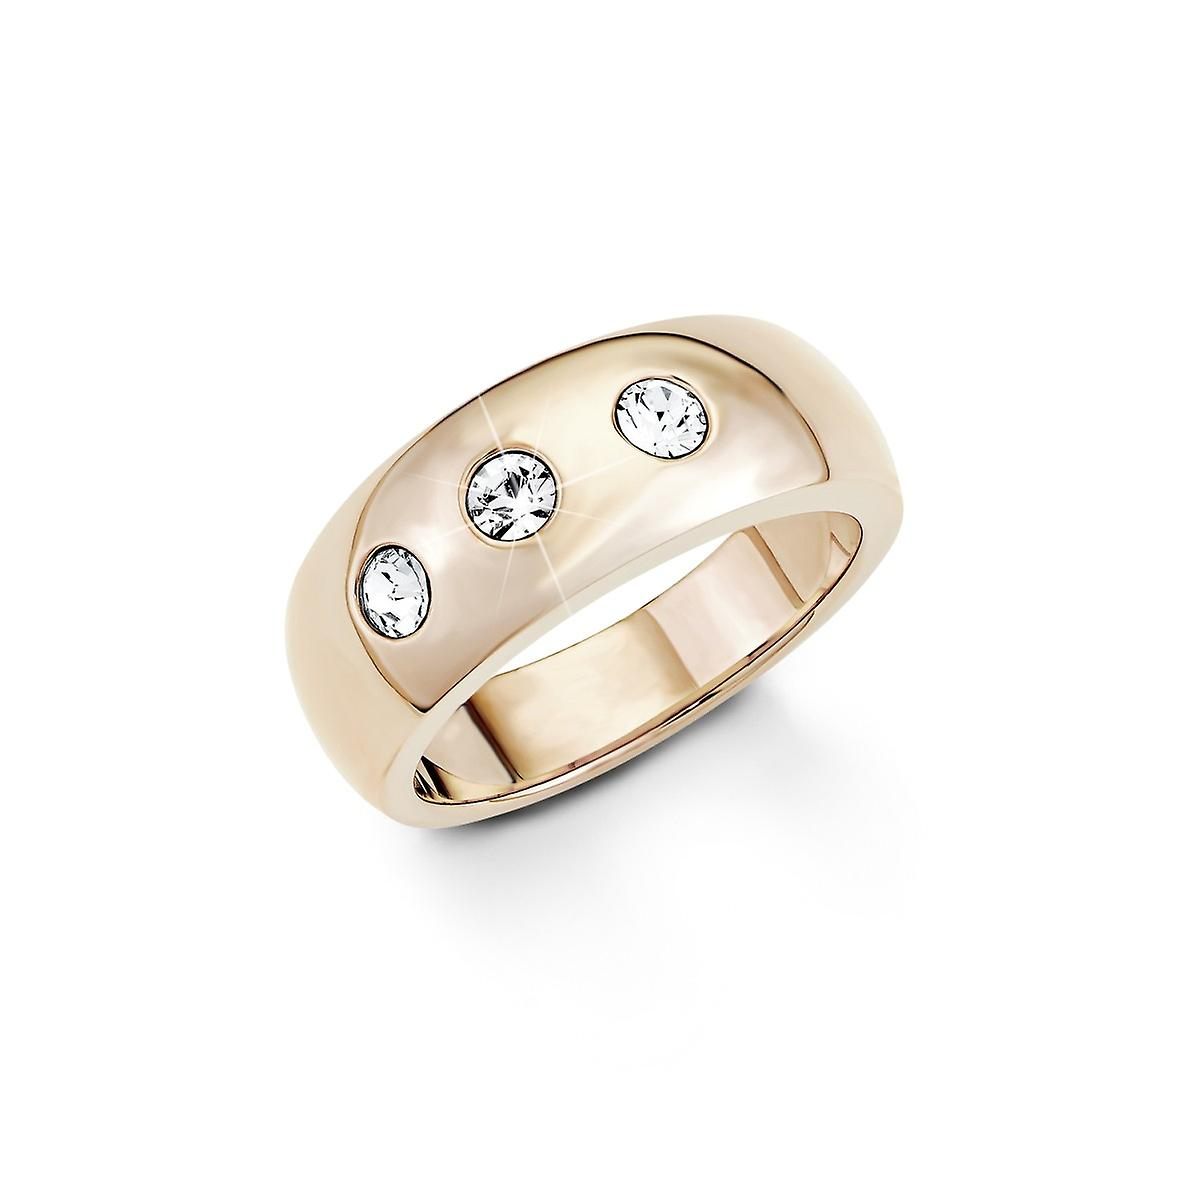 s.Oliver jewel ladies ring stainless steel IP Rose SO1270